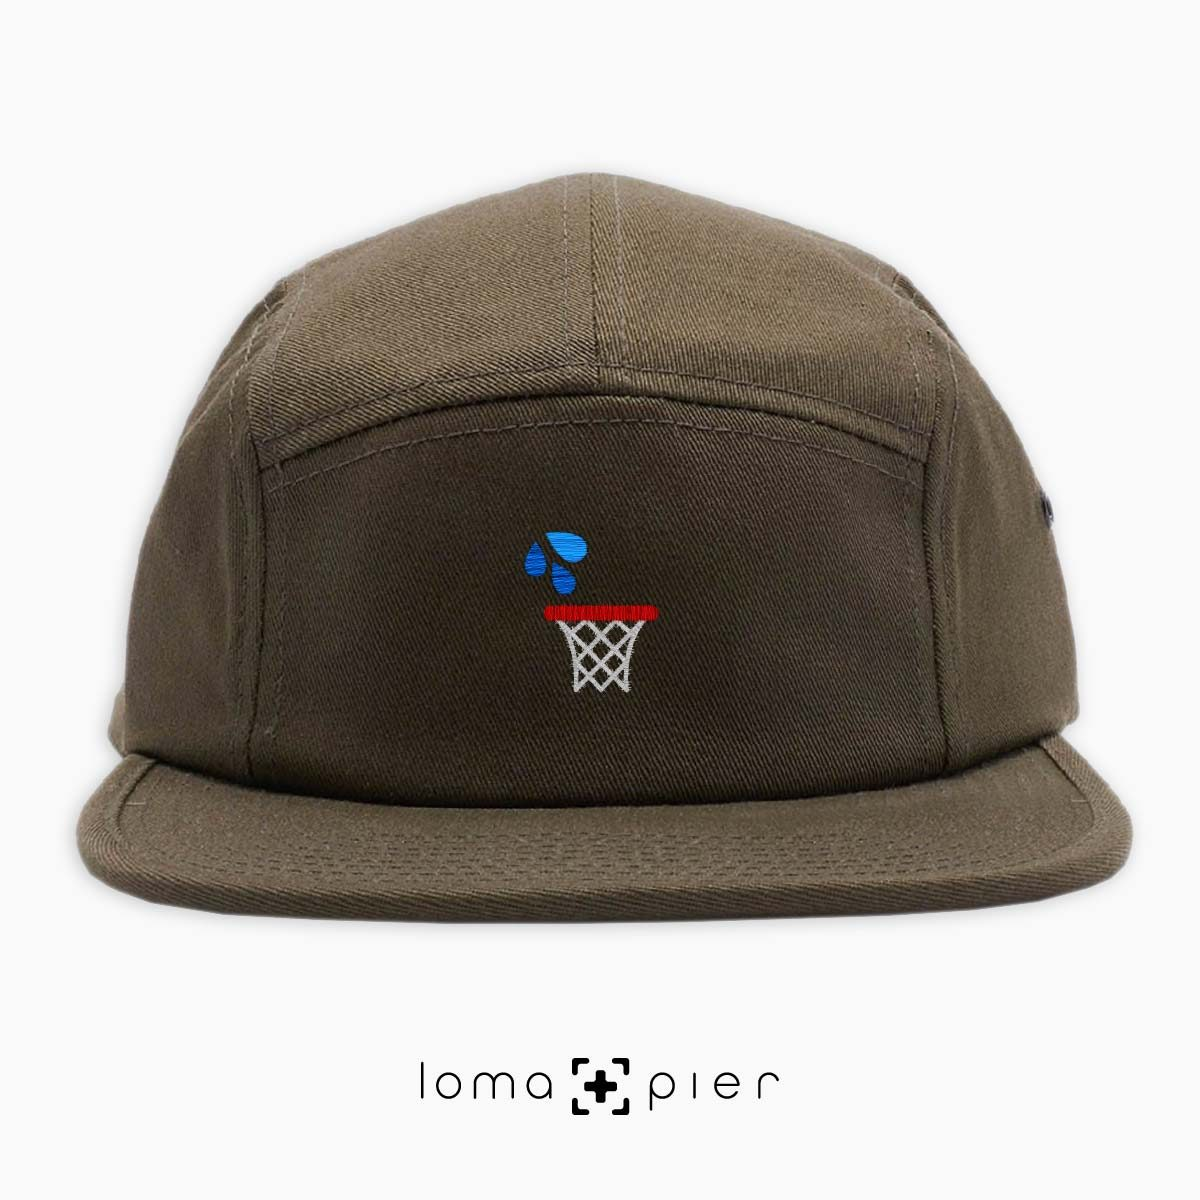 WET JUMPER basketball hoop icon embroidered on an olive green cotton 5-panel hat by loma+pier hat store